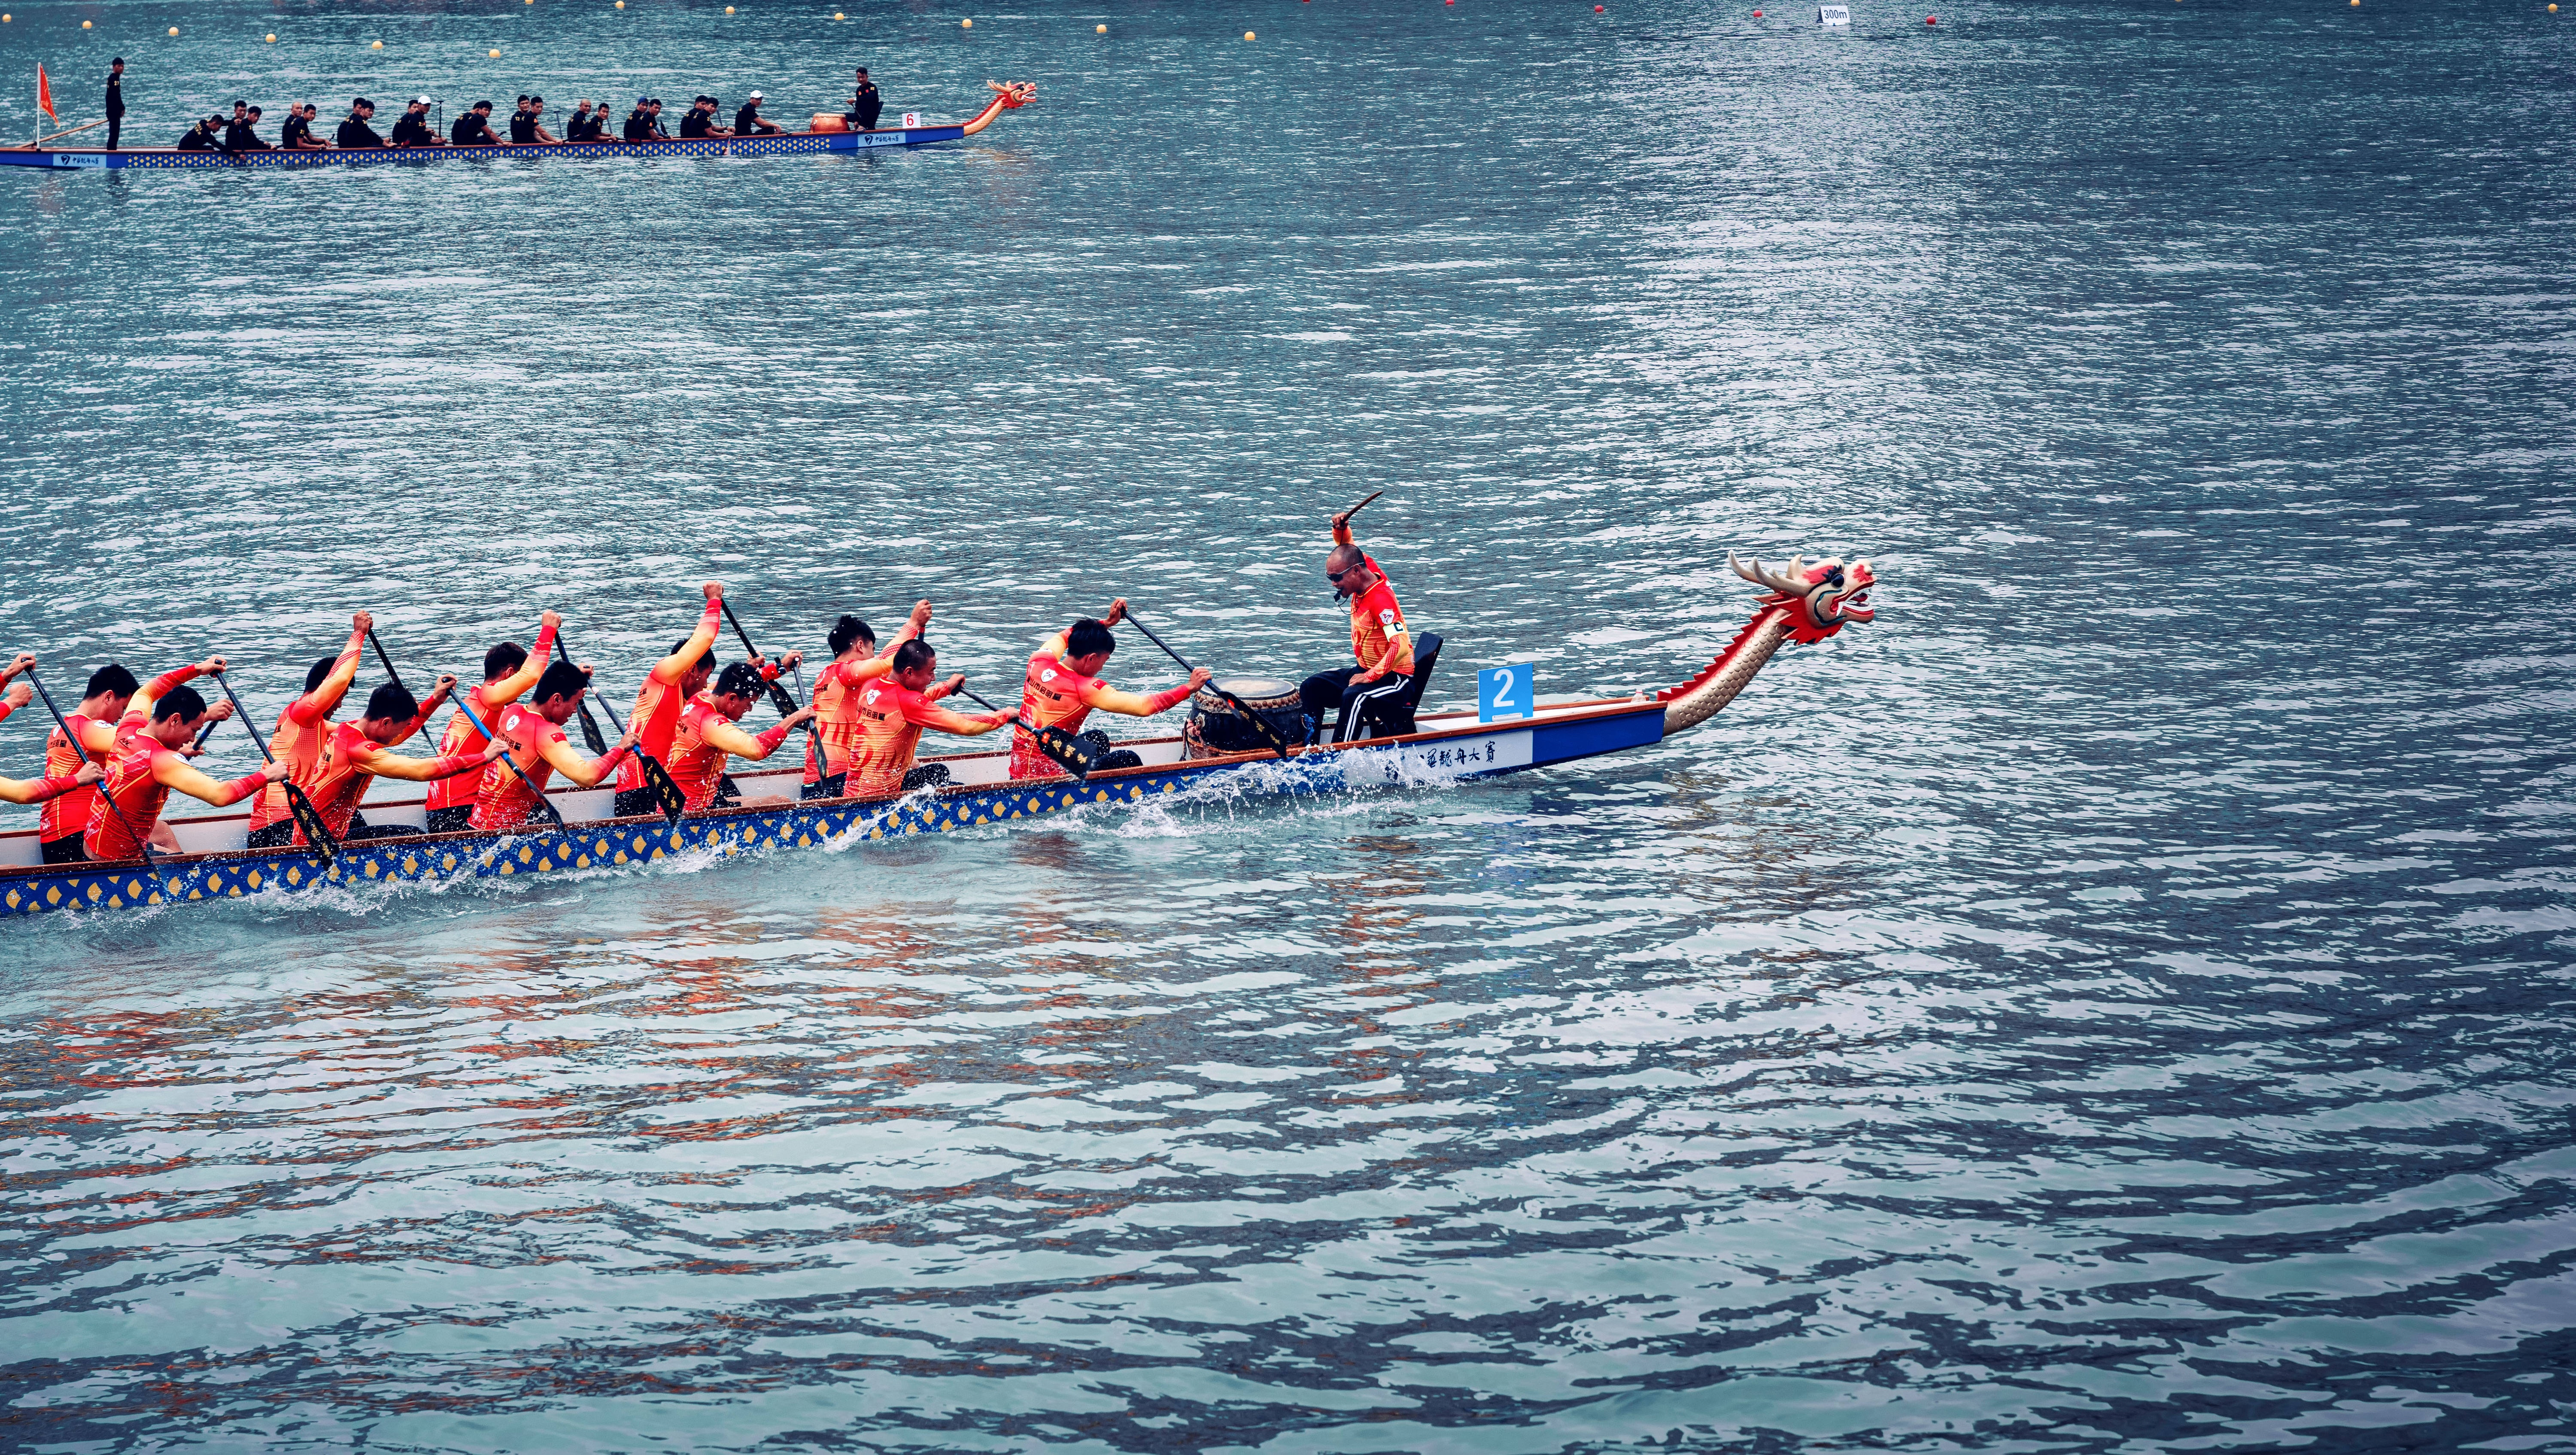 Dragon boat team paddling in the water in a red uniform.